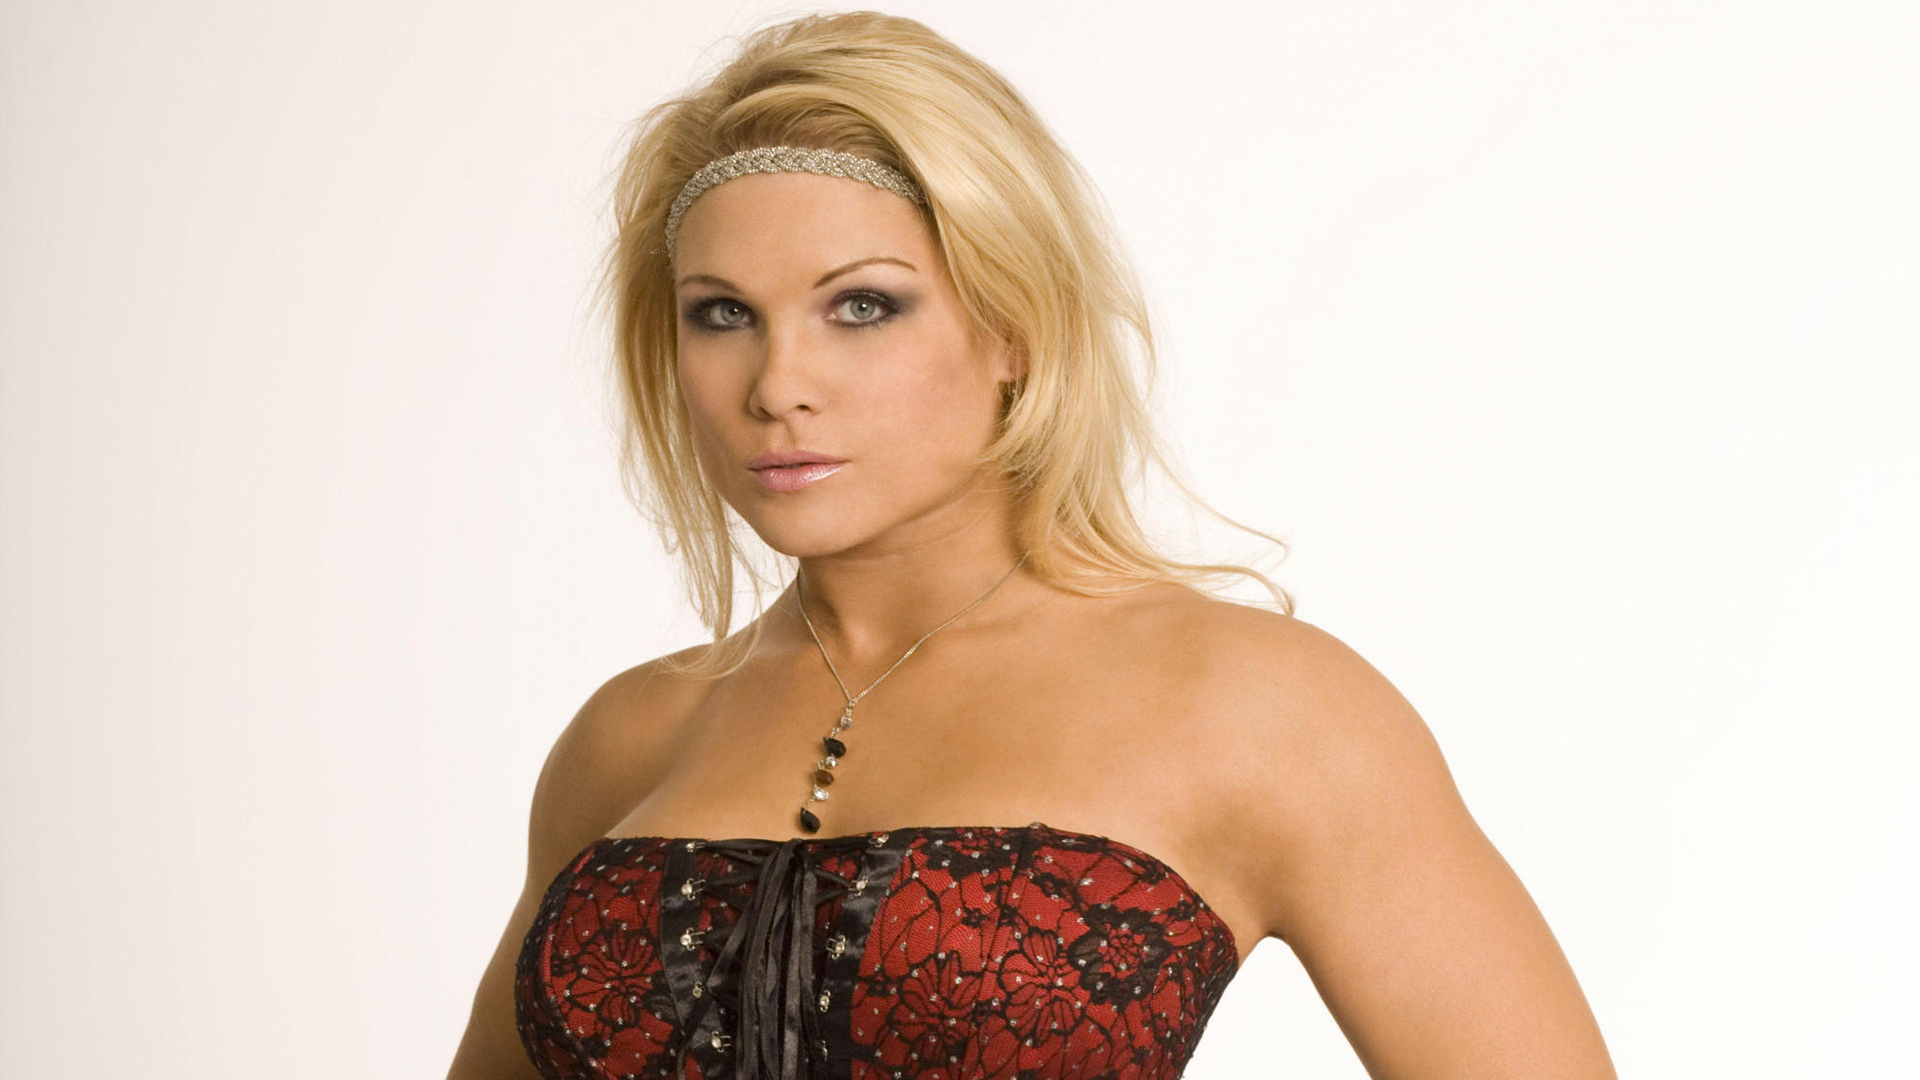 Wait, is Beth Phoenix really hurt?